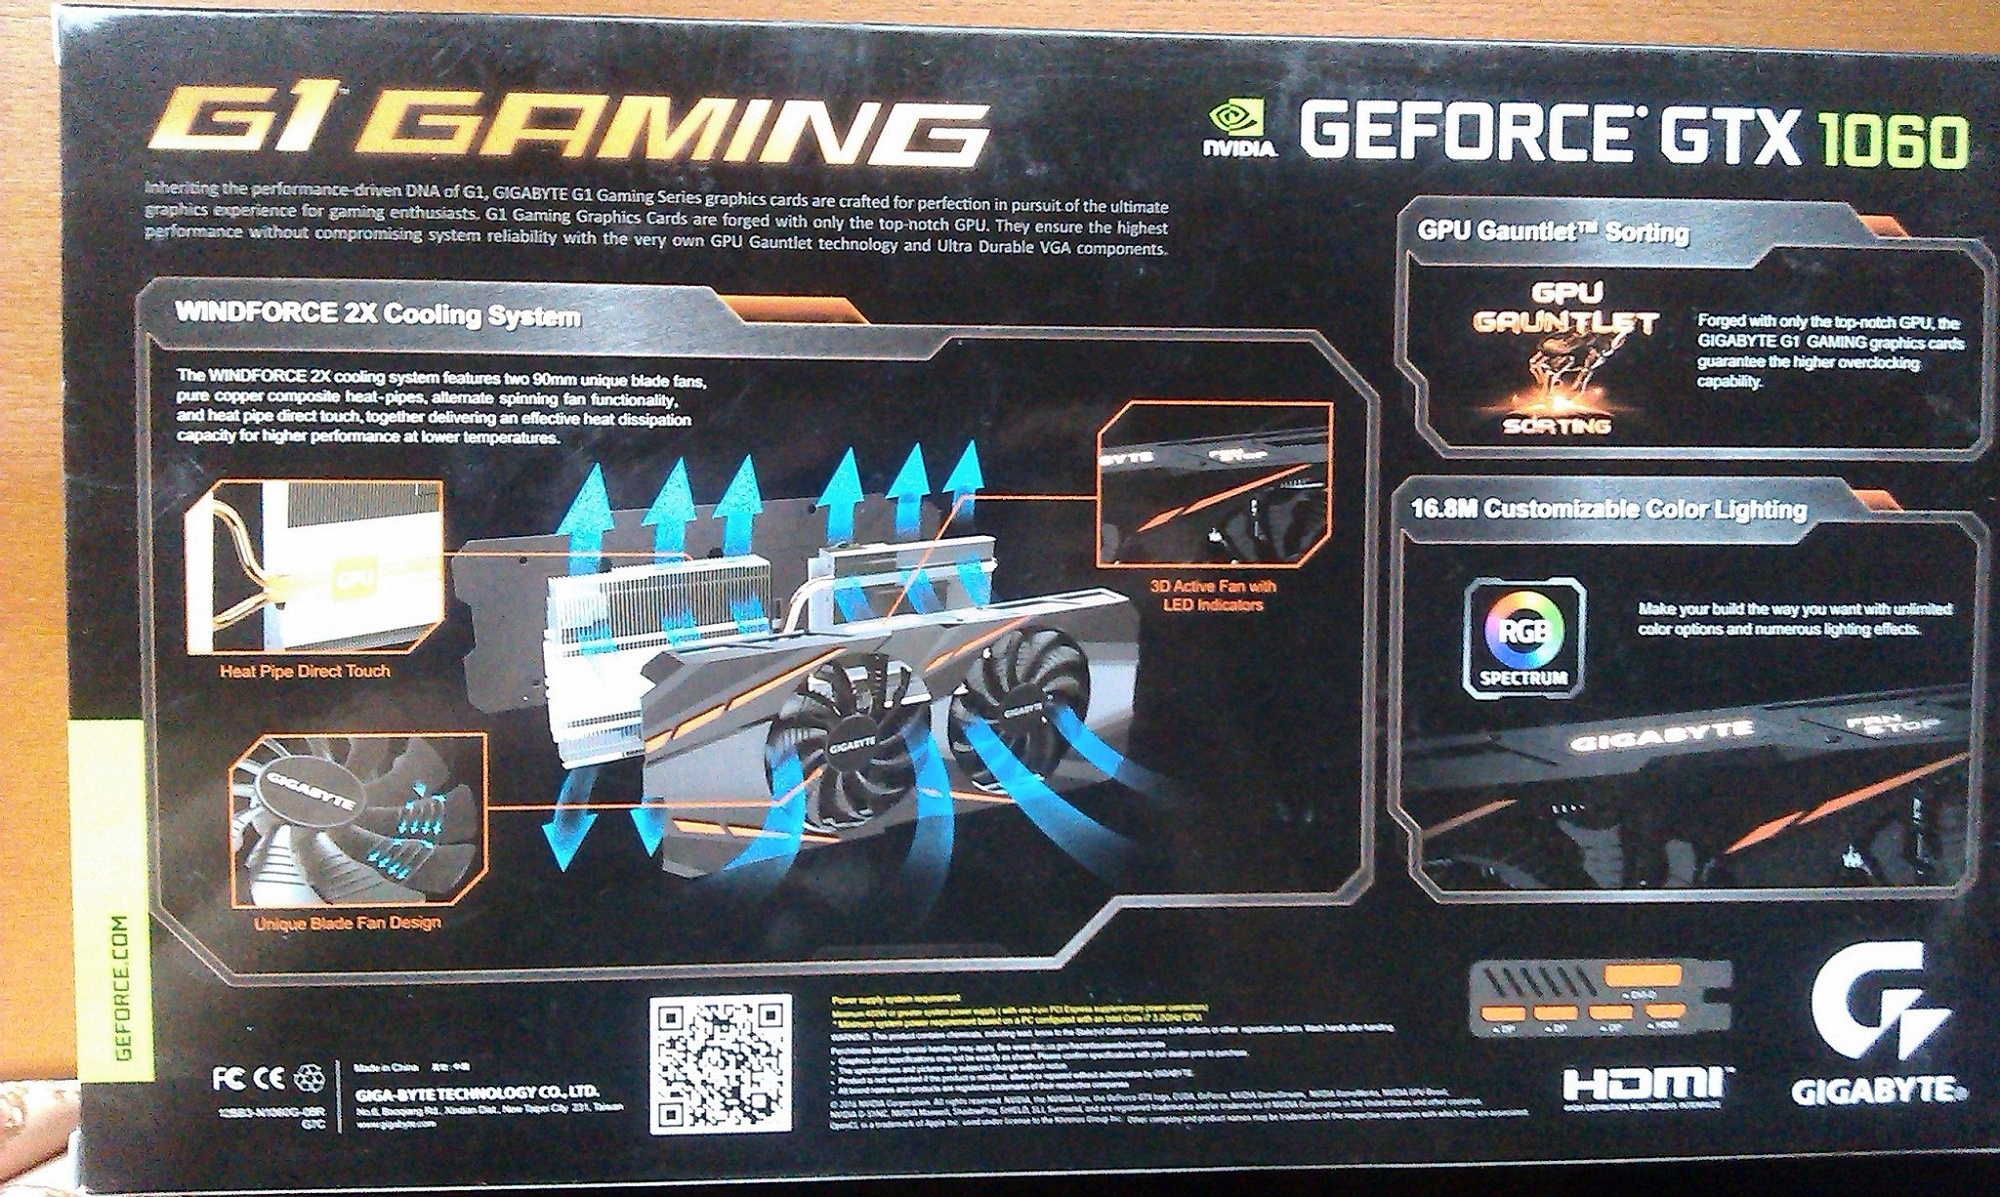 Gigabyte Geforce Gtx 1060 1620mhz G1 Gaming Pci E 30 6144mb 8008mhz 192 Bit